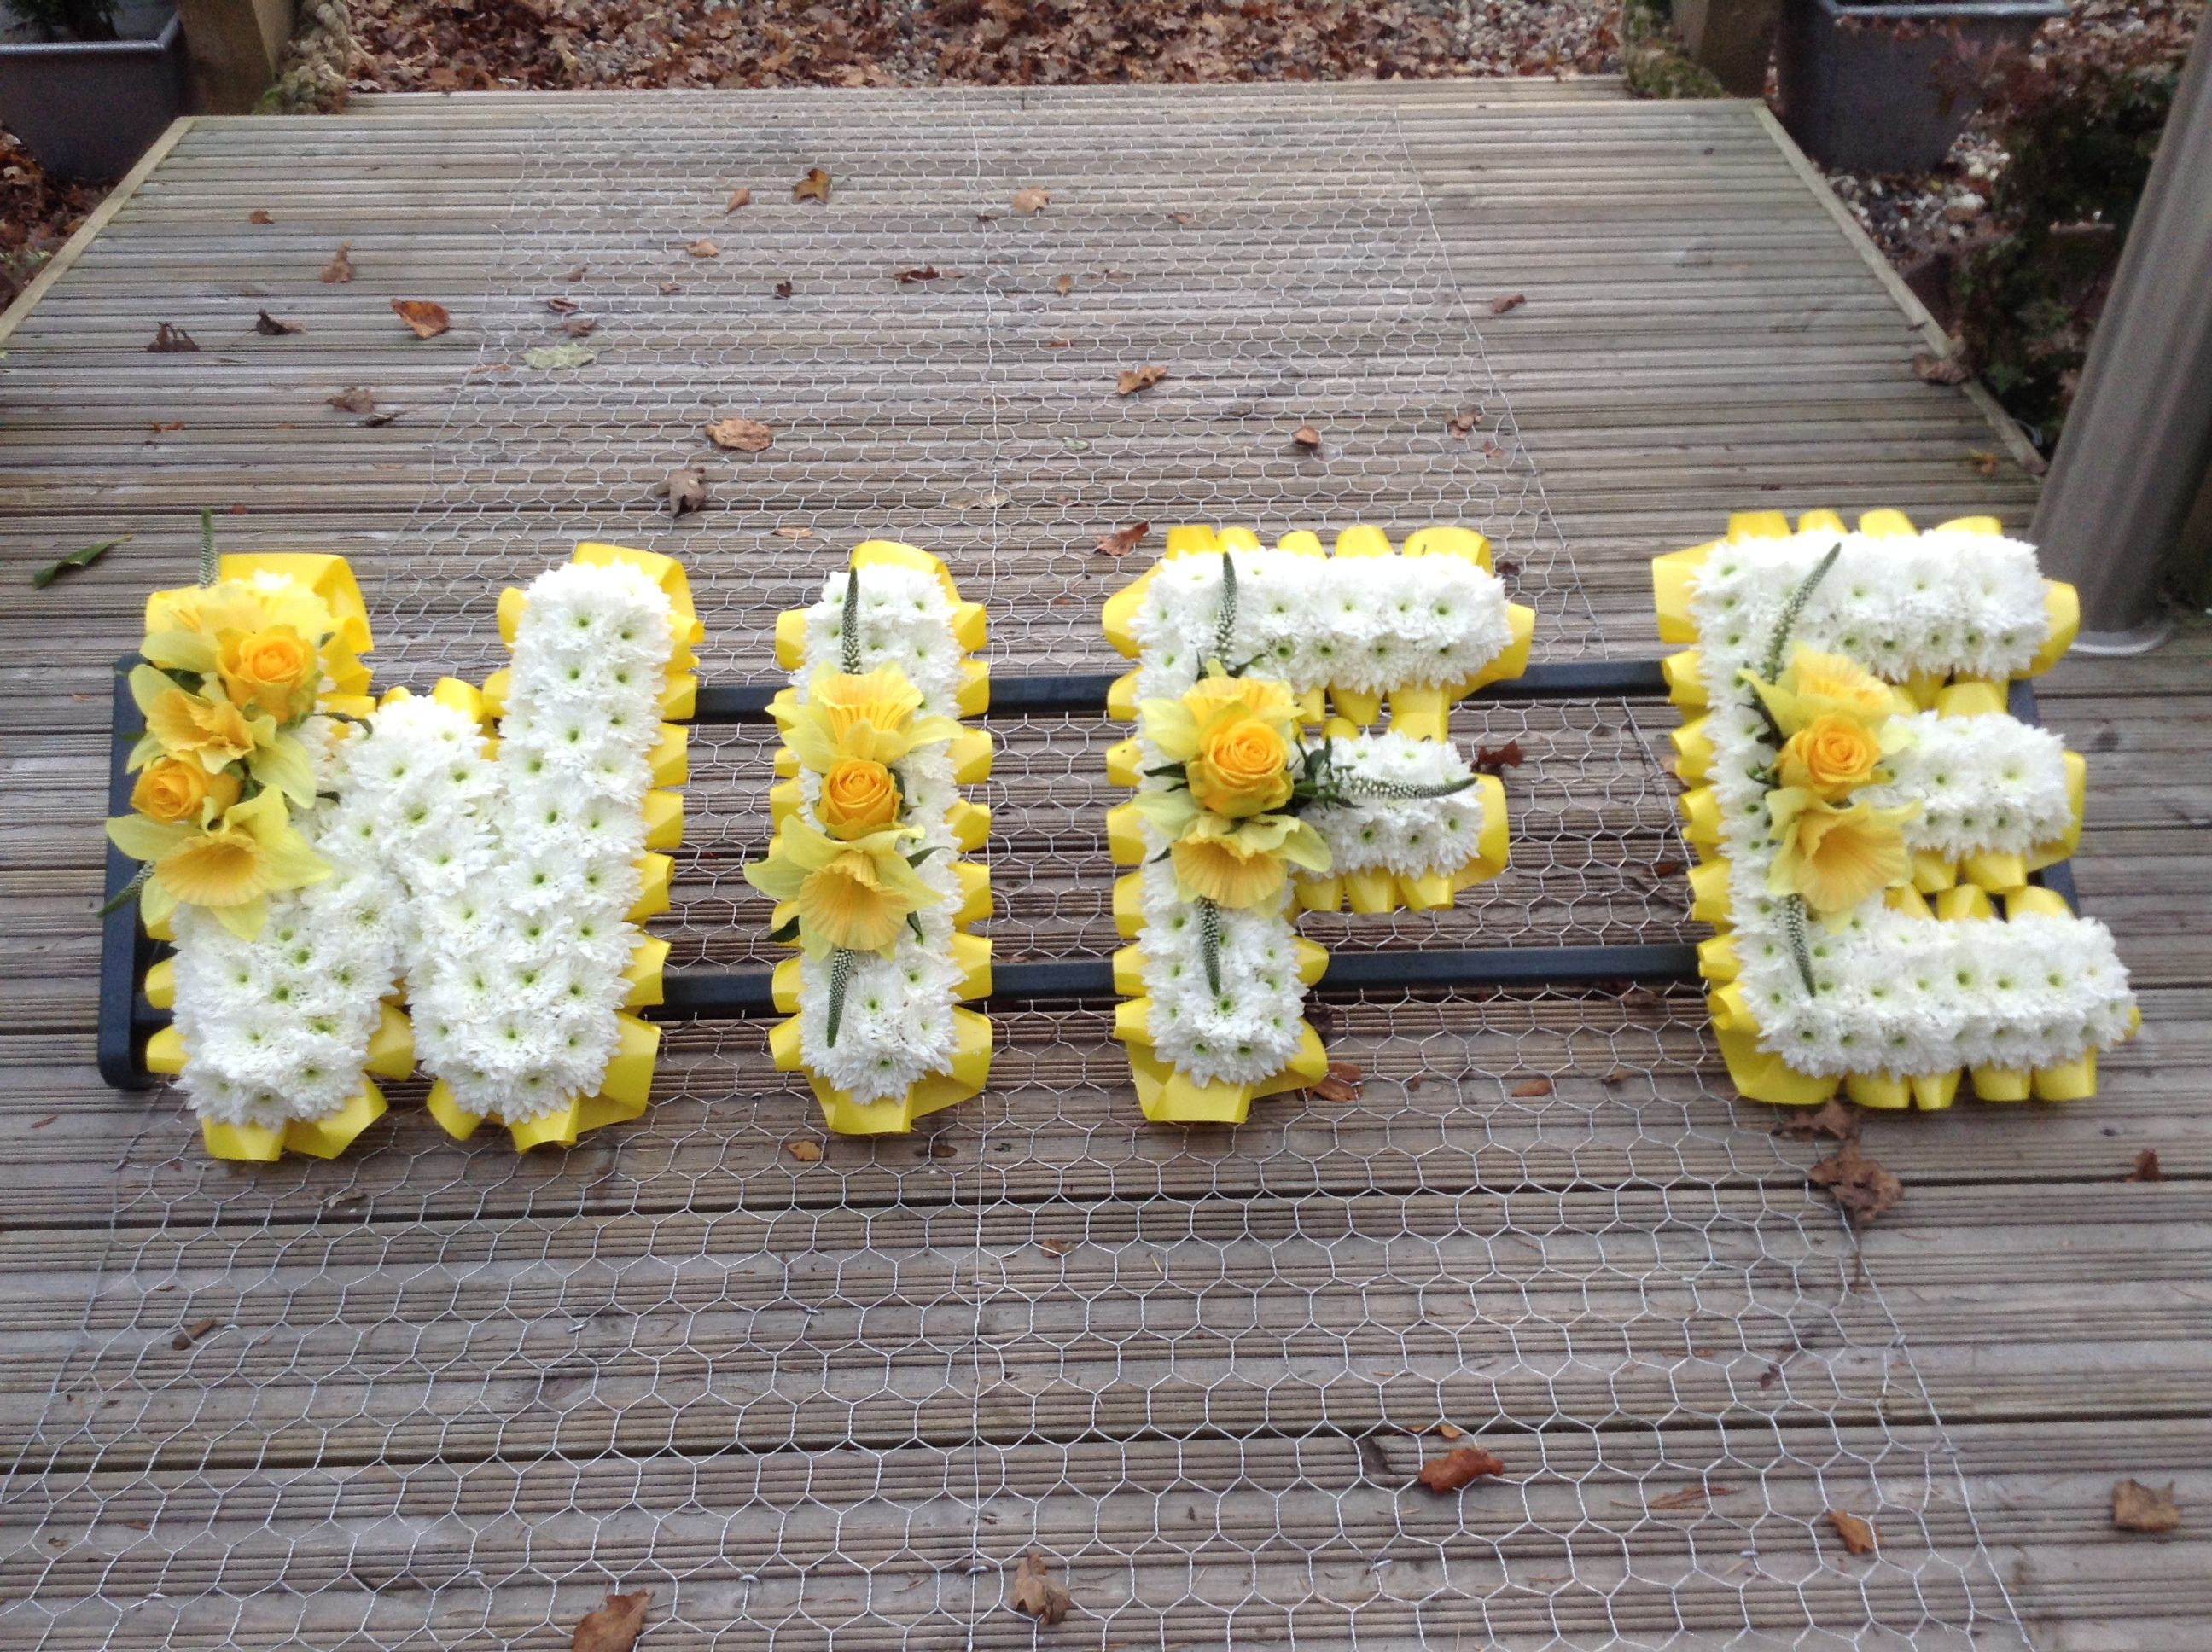 Funeral flowers wife funeral flower letter tribute beautiful funeral flowers wife funeral flower letter tribute beautiful yellow and white with stunning yellow roses dhlflorist Choice Image